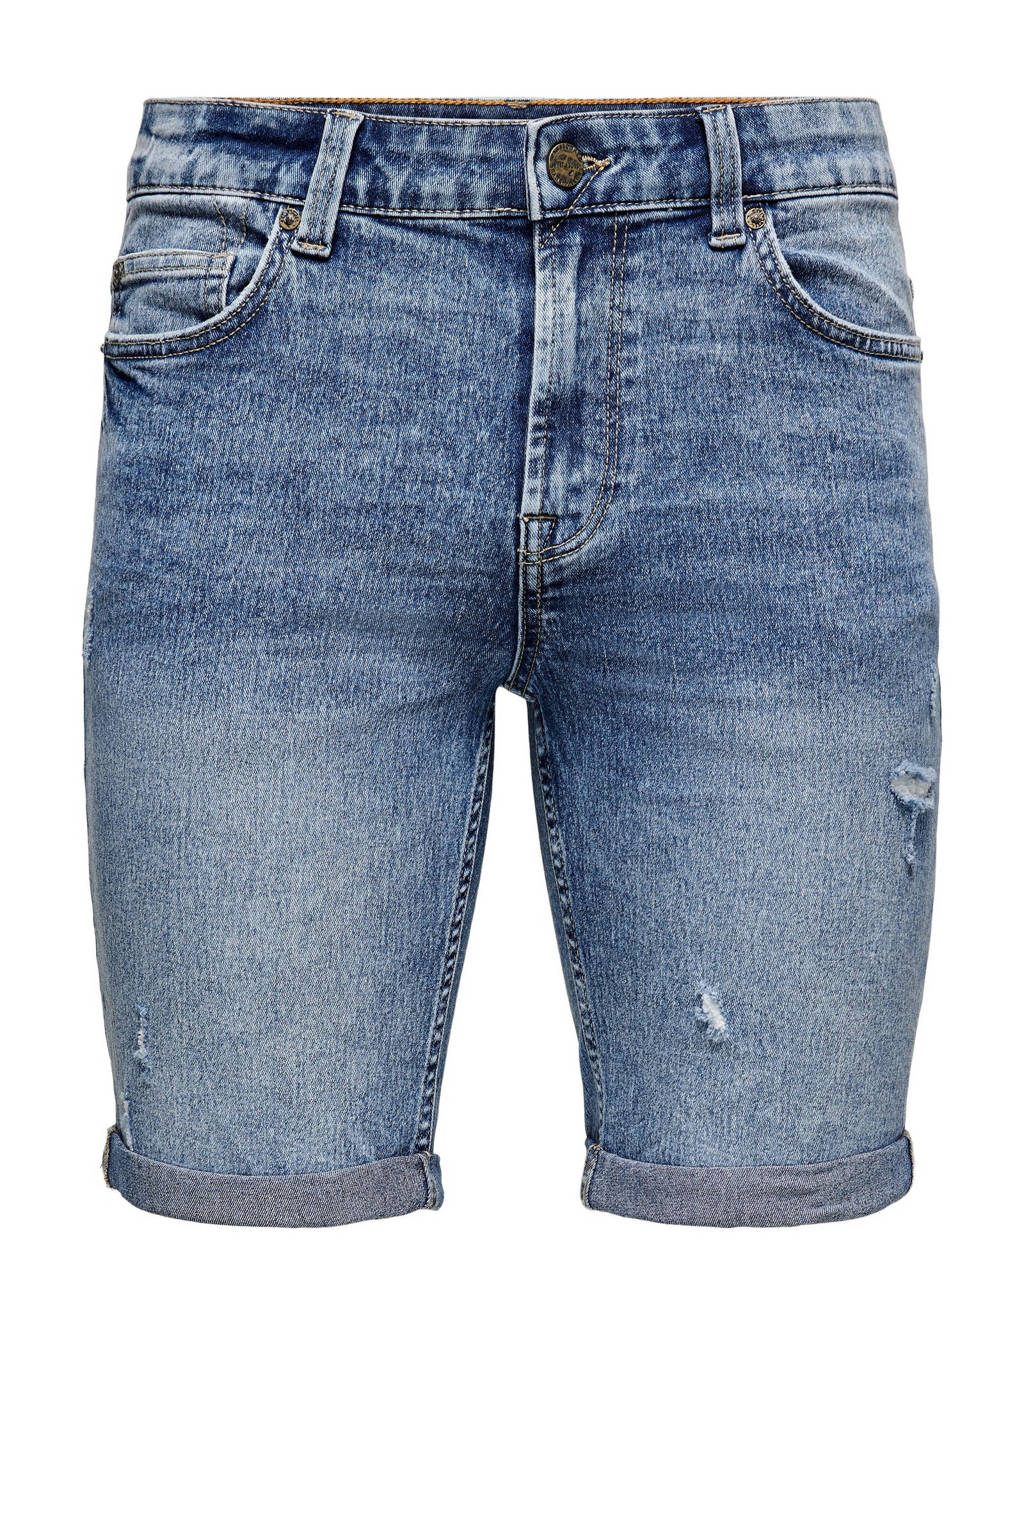 ONLY & SONS slim fit jeans short Ply blue denim, Blue denim